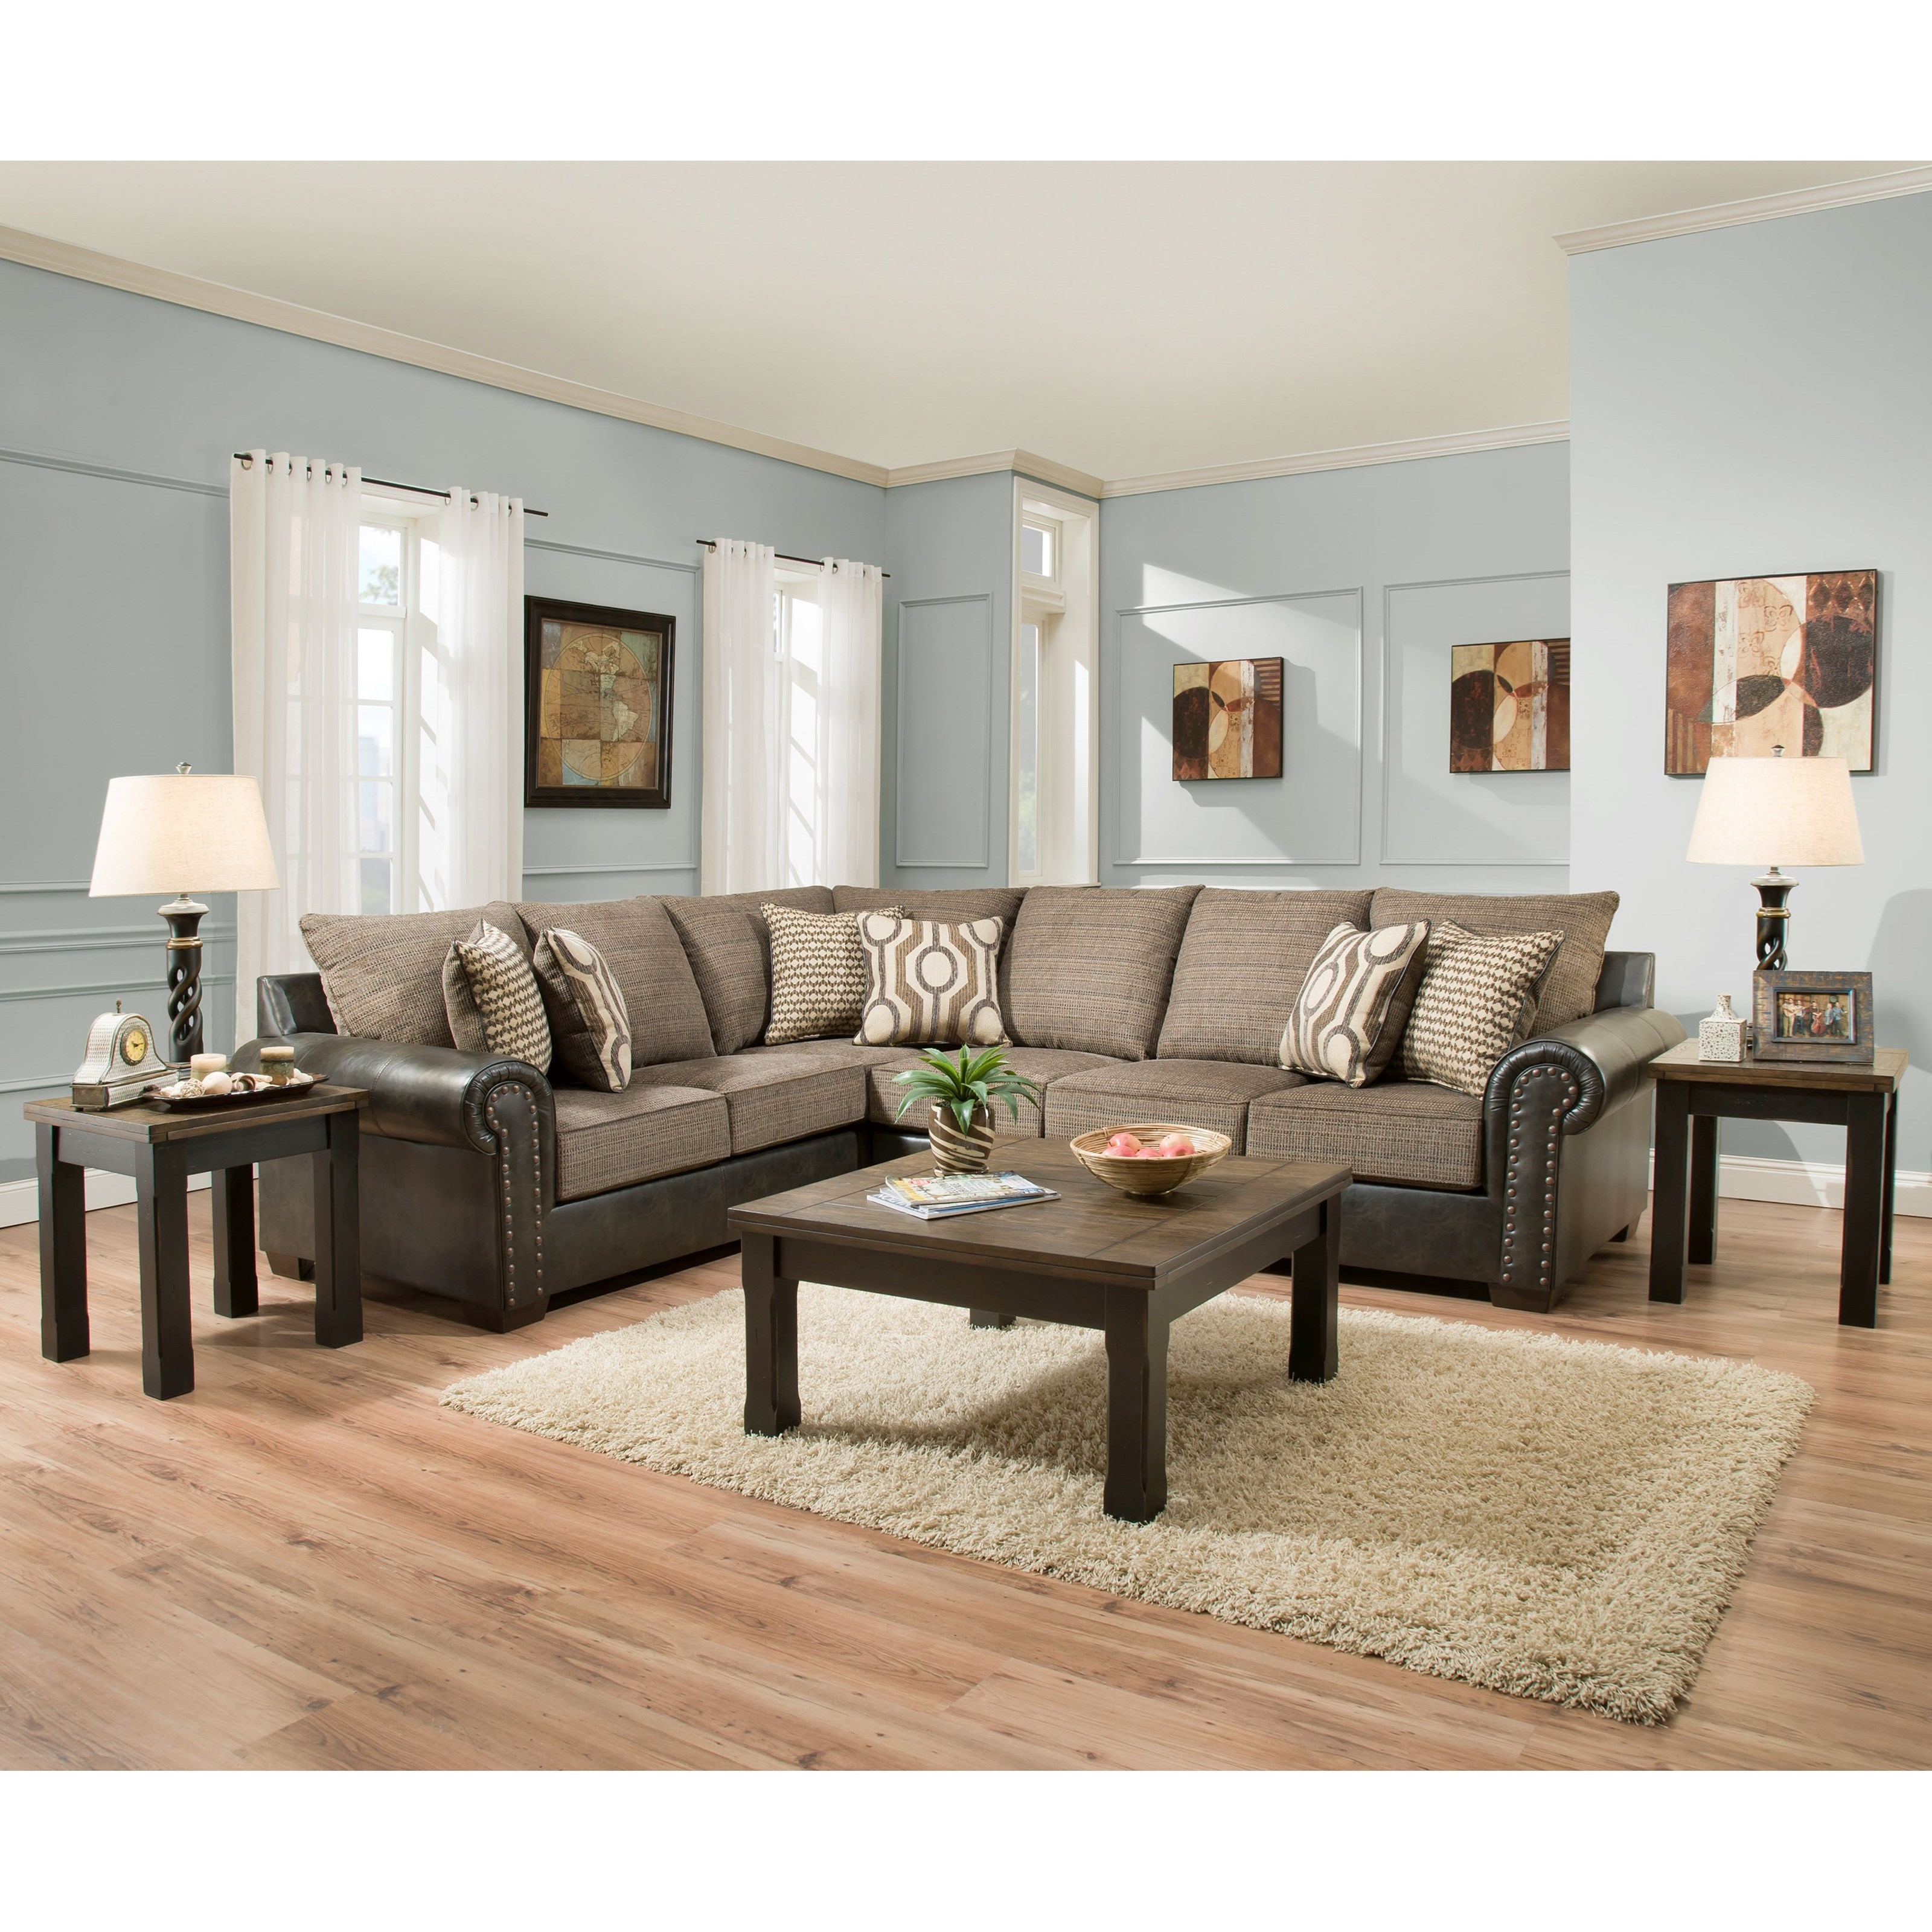 United Furniture Industries 7591 5 Seat Sectional Sofa Rooms For